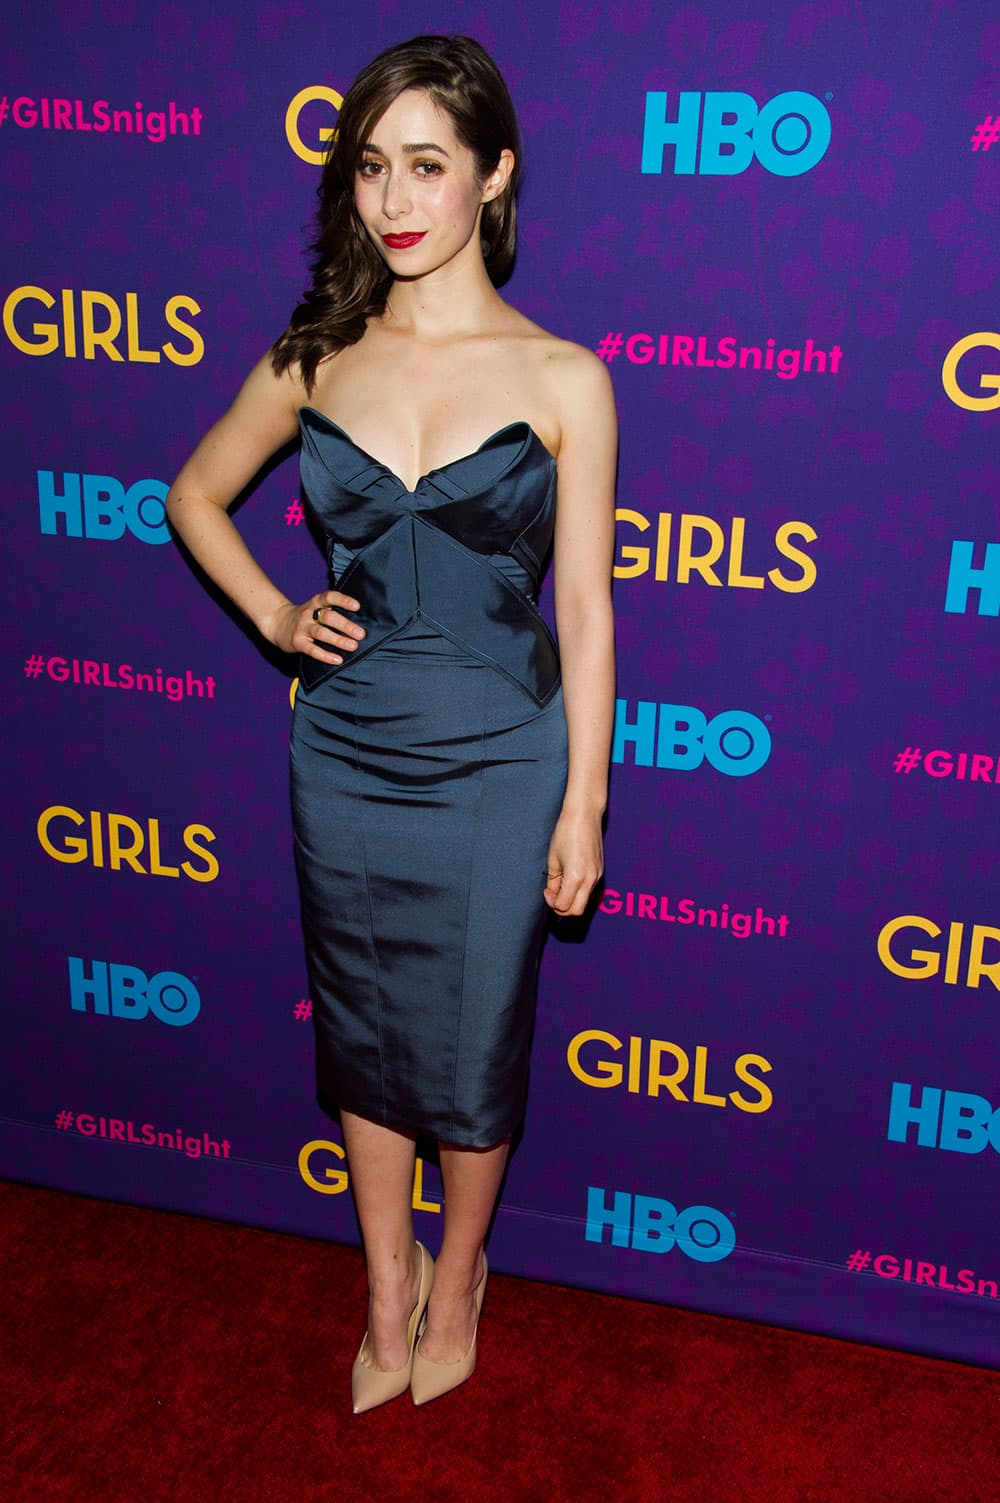 Cristin Milioti attends the premiere of HBO's `Girls` third season in New York.